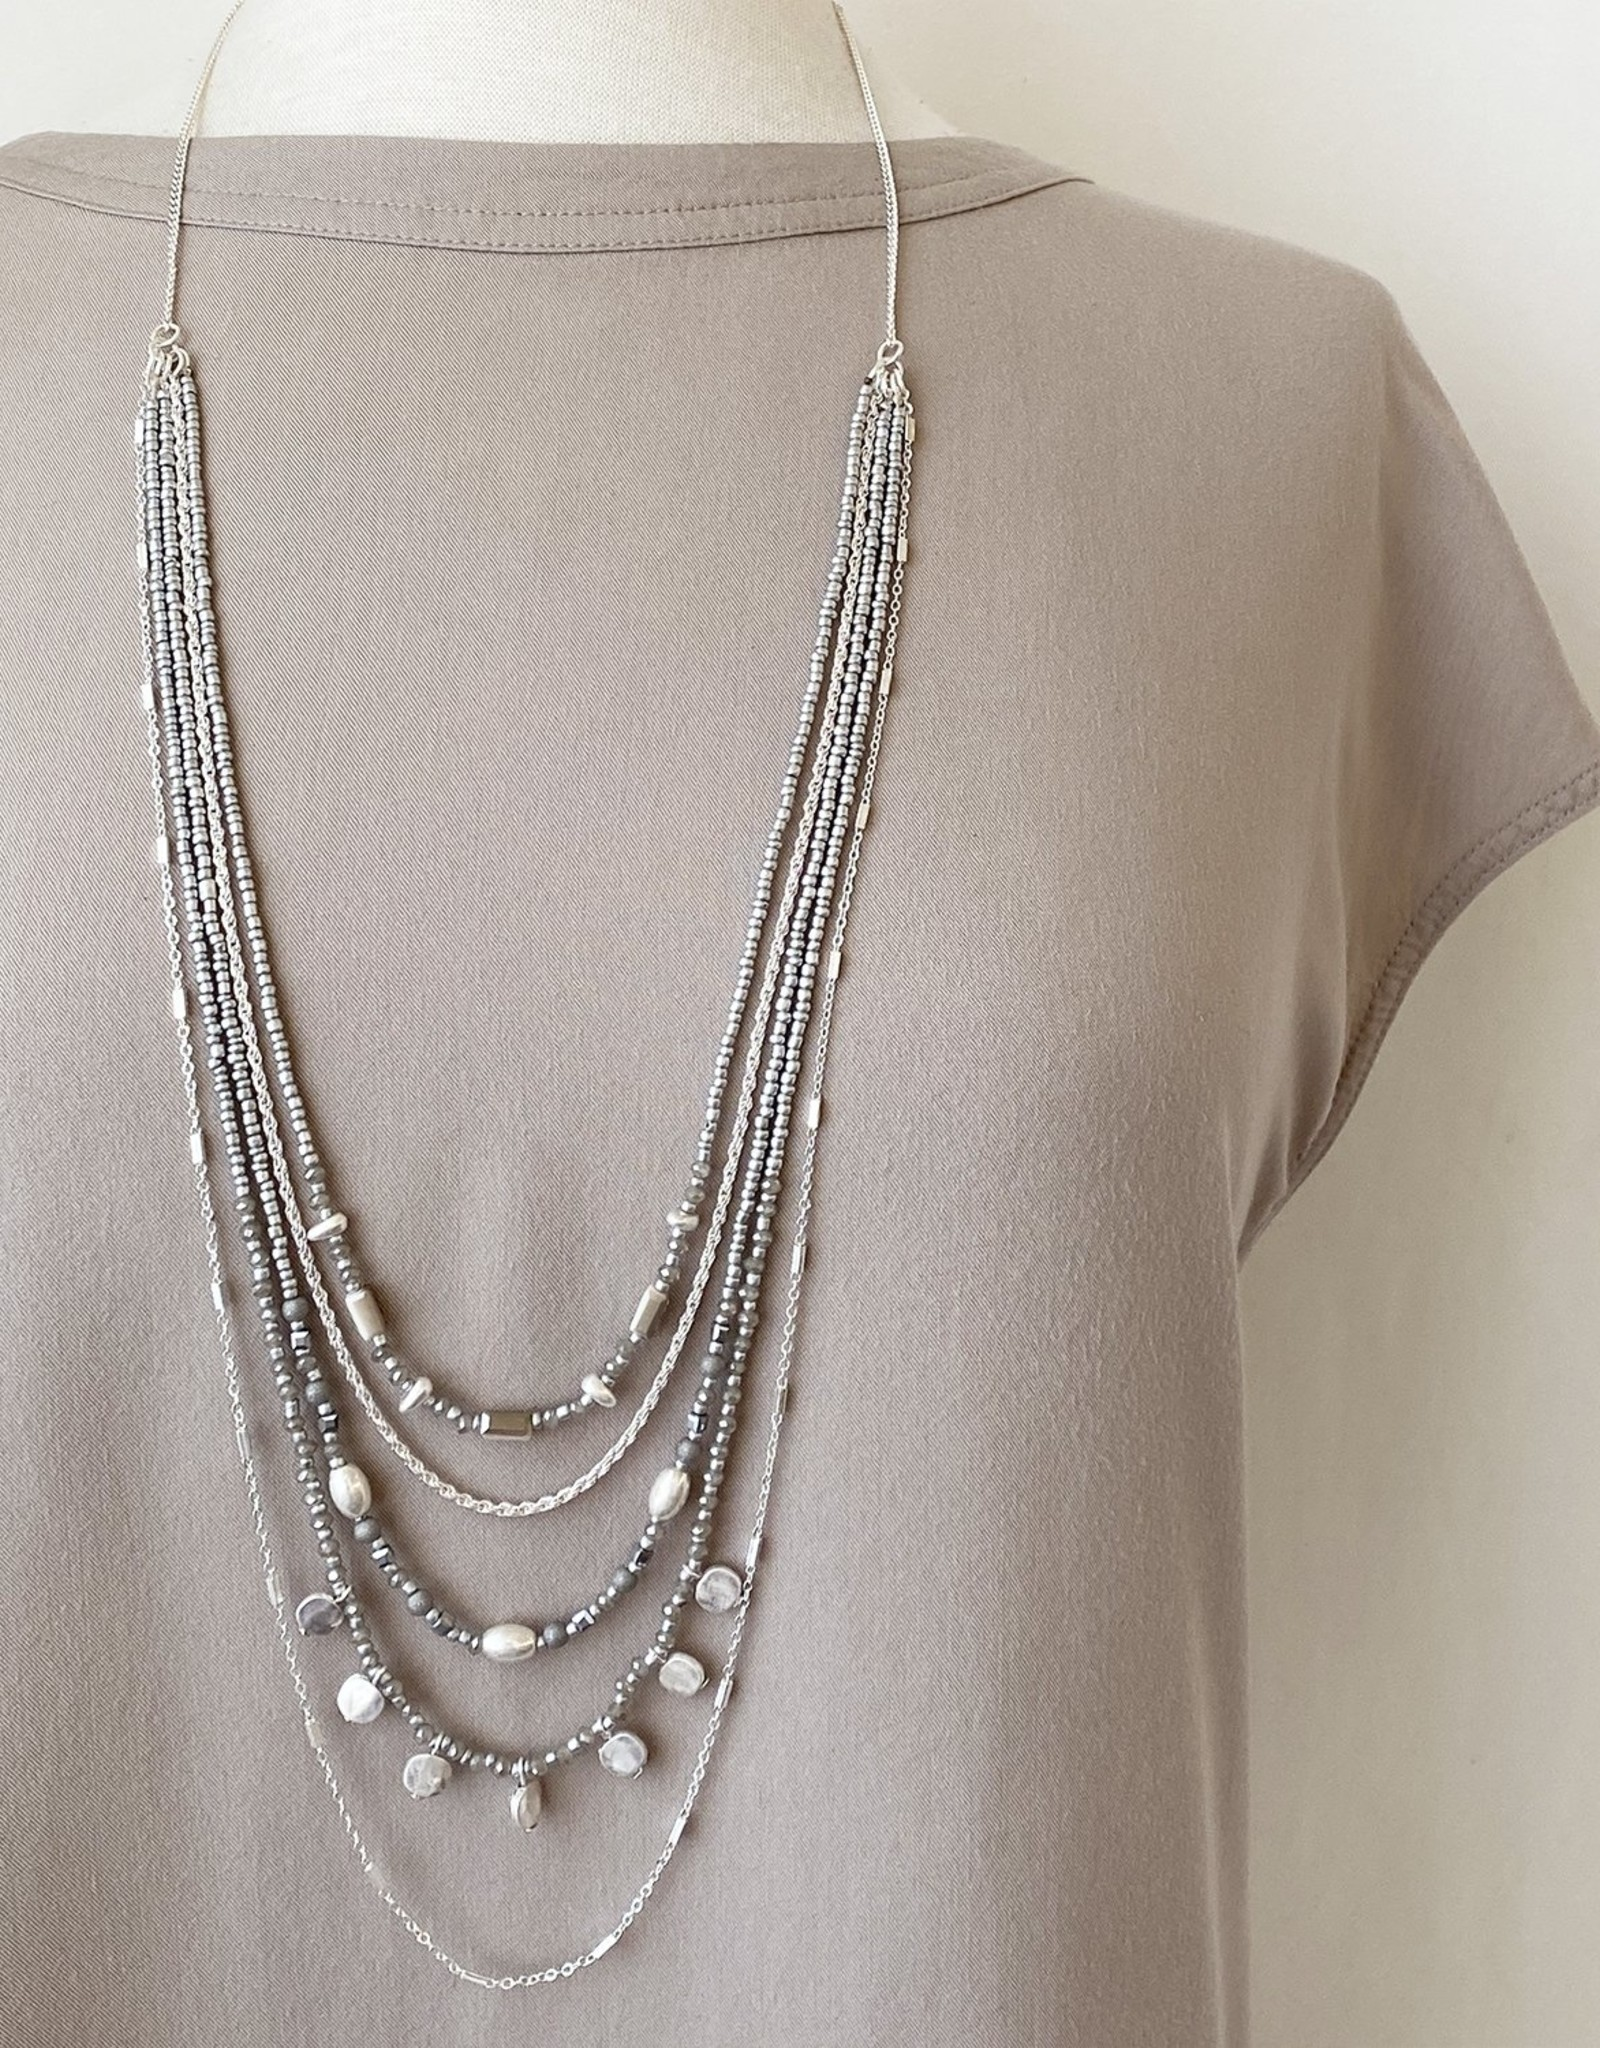 Caracol Caracol 1478 Long Triple Chain Necklace